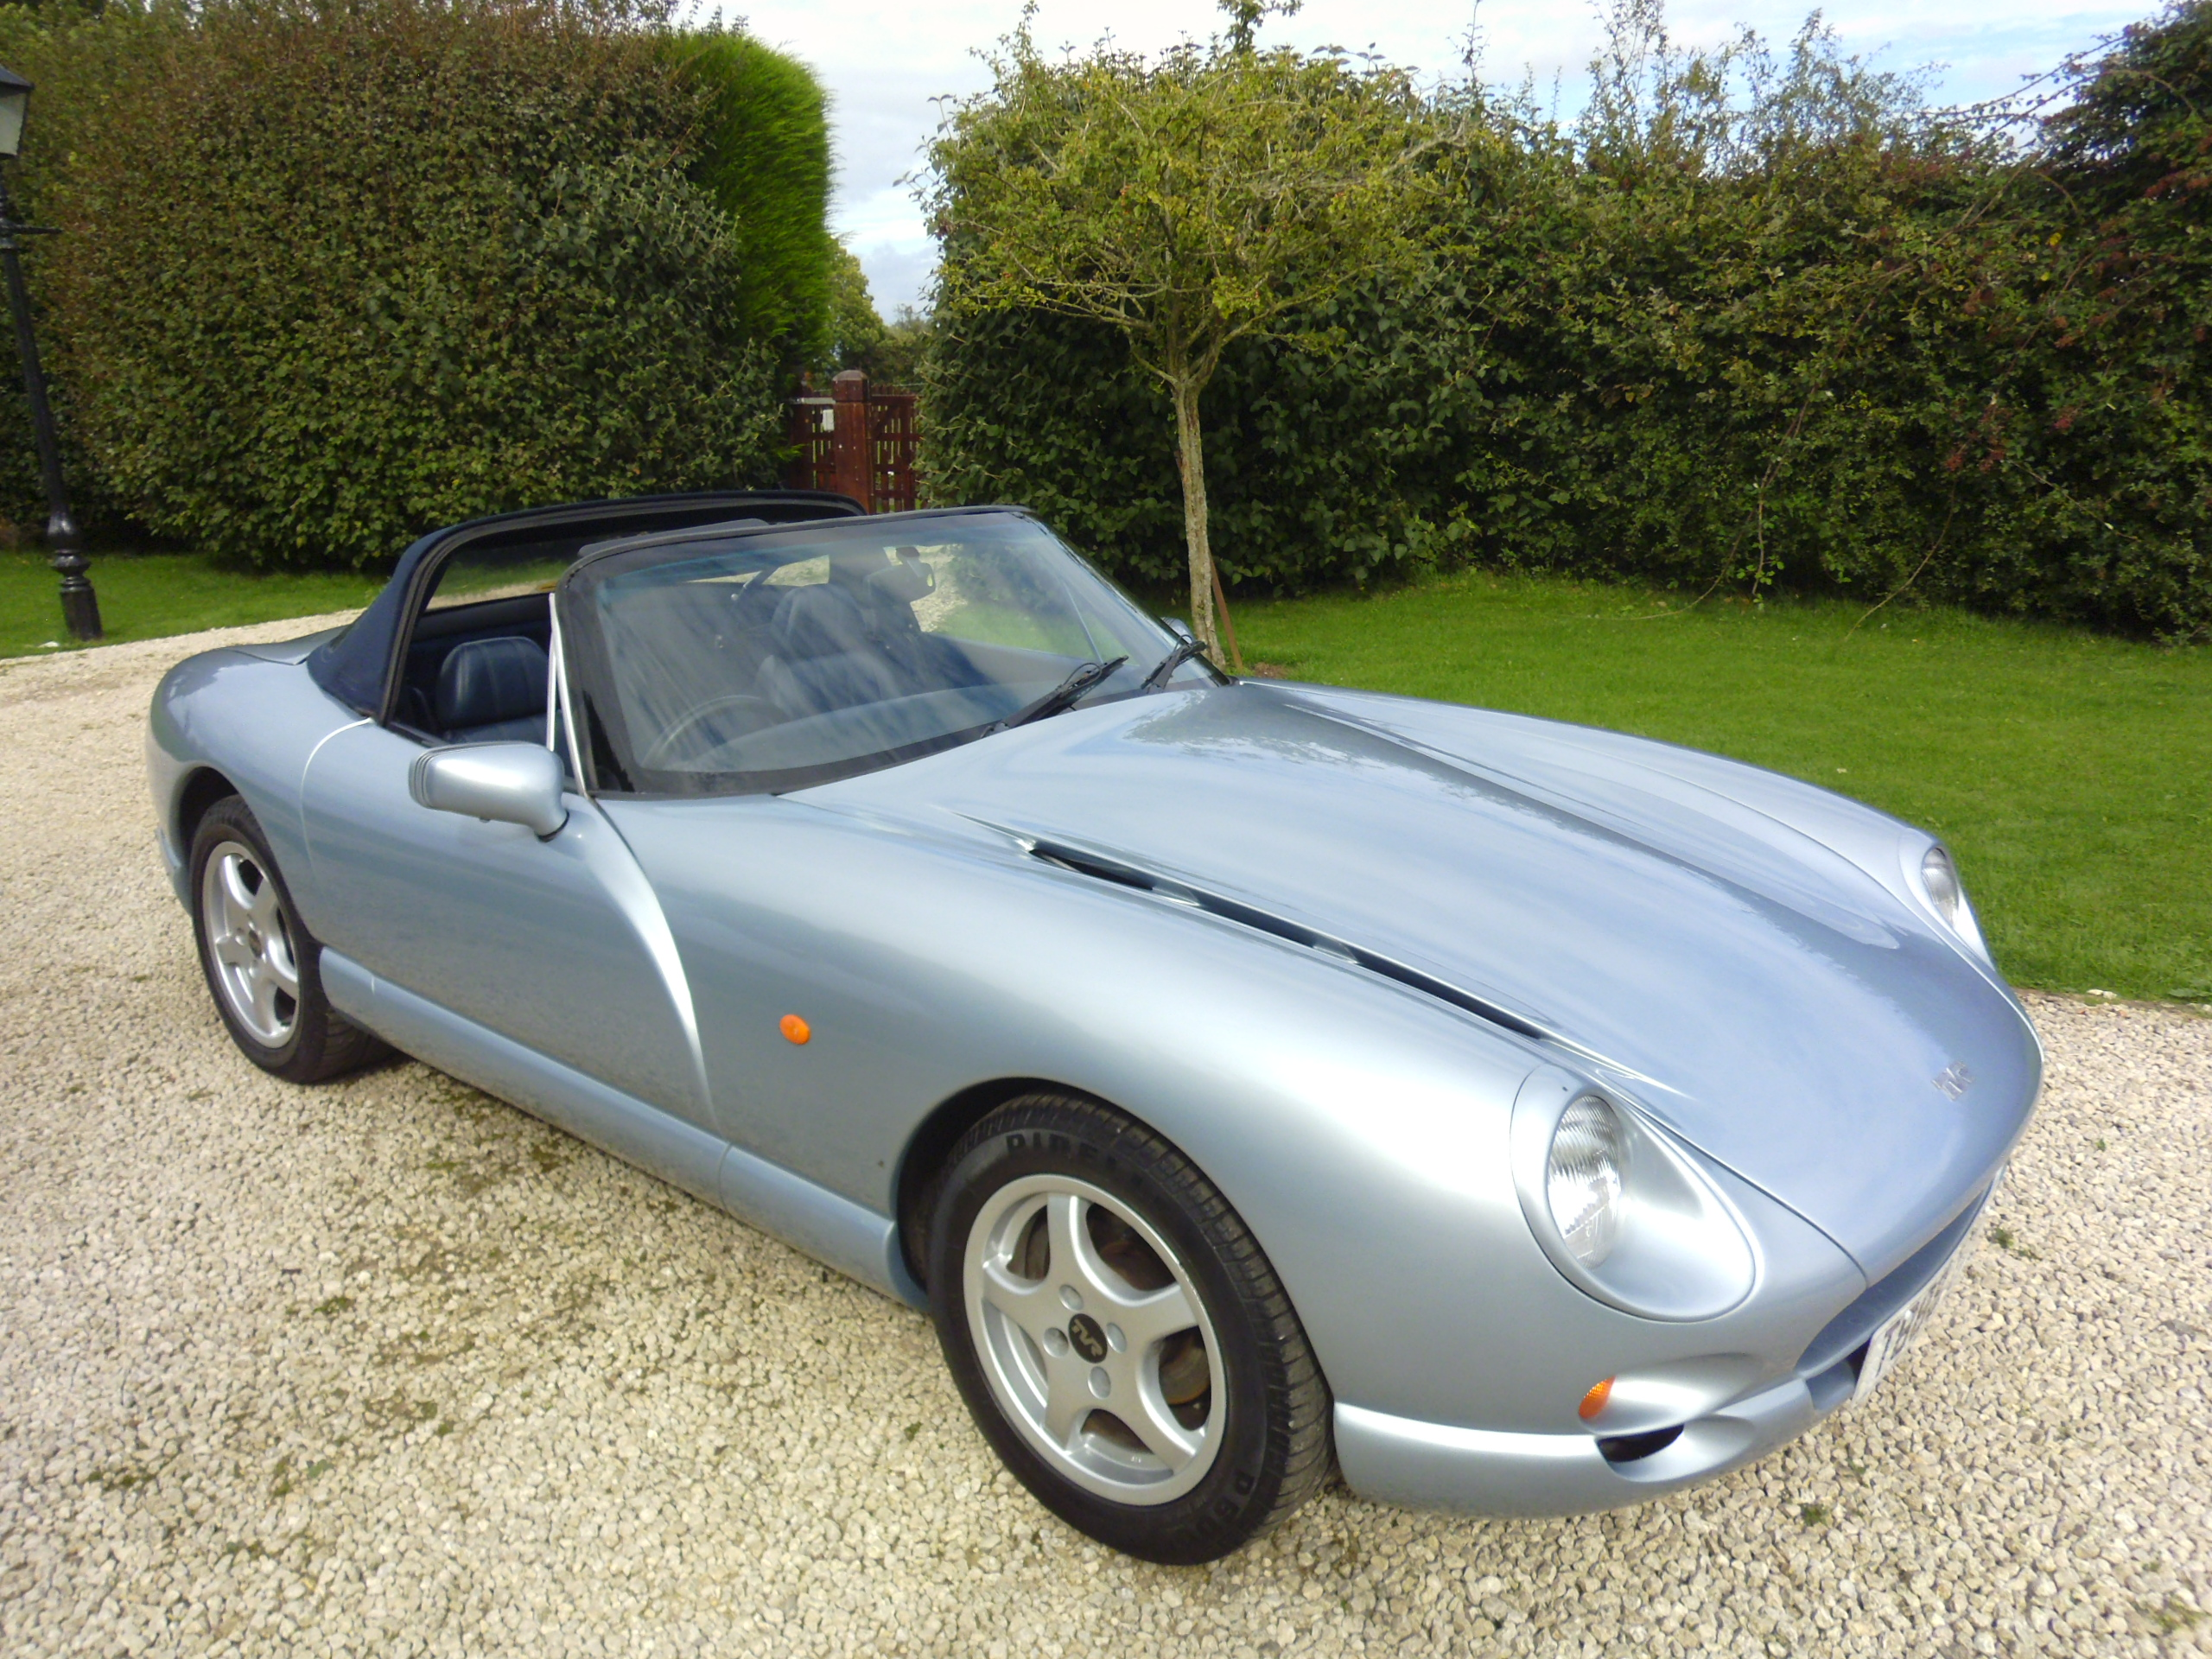 P1050205 Fascinating Tvr Griffith for Sale In Uk Cars Trend